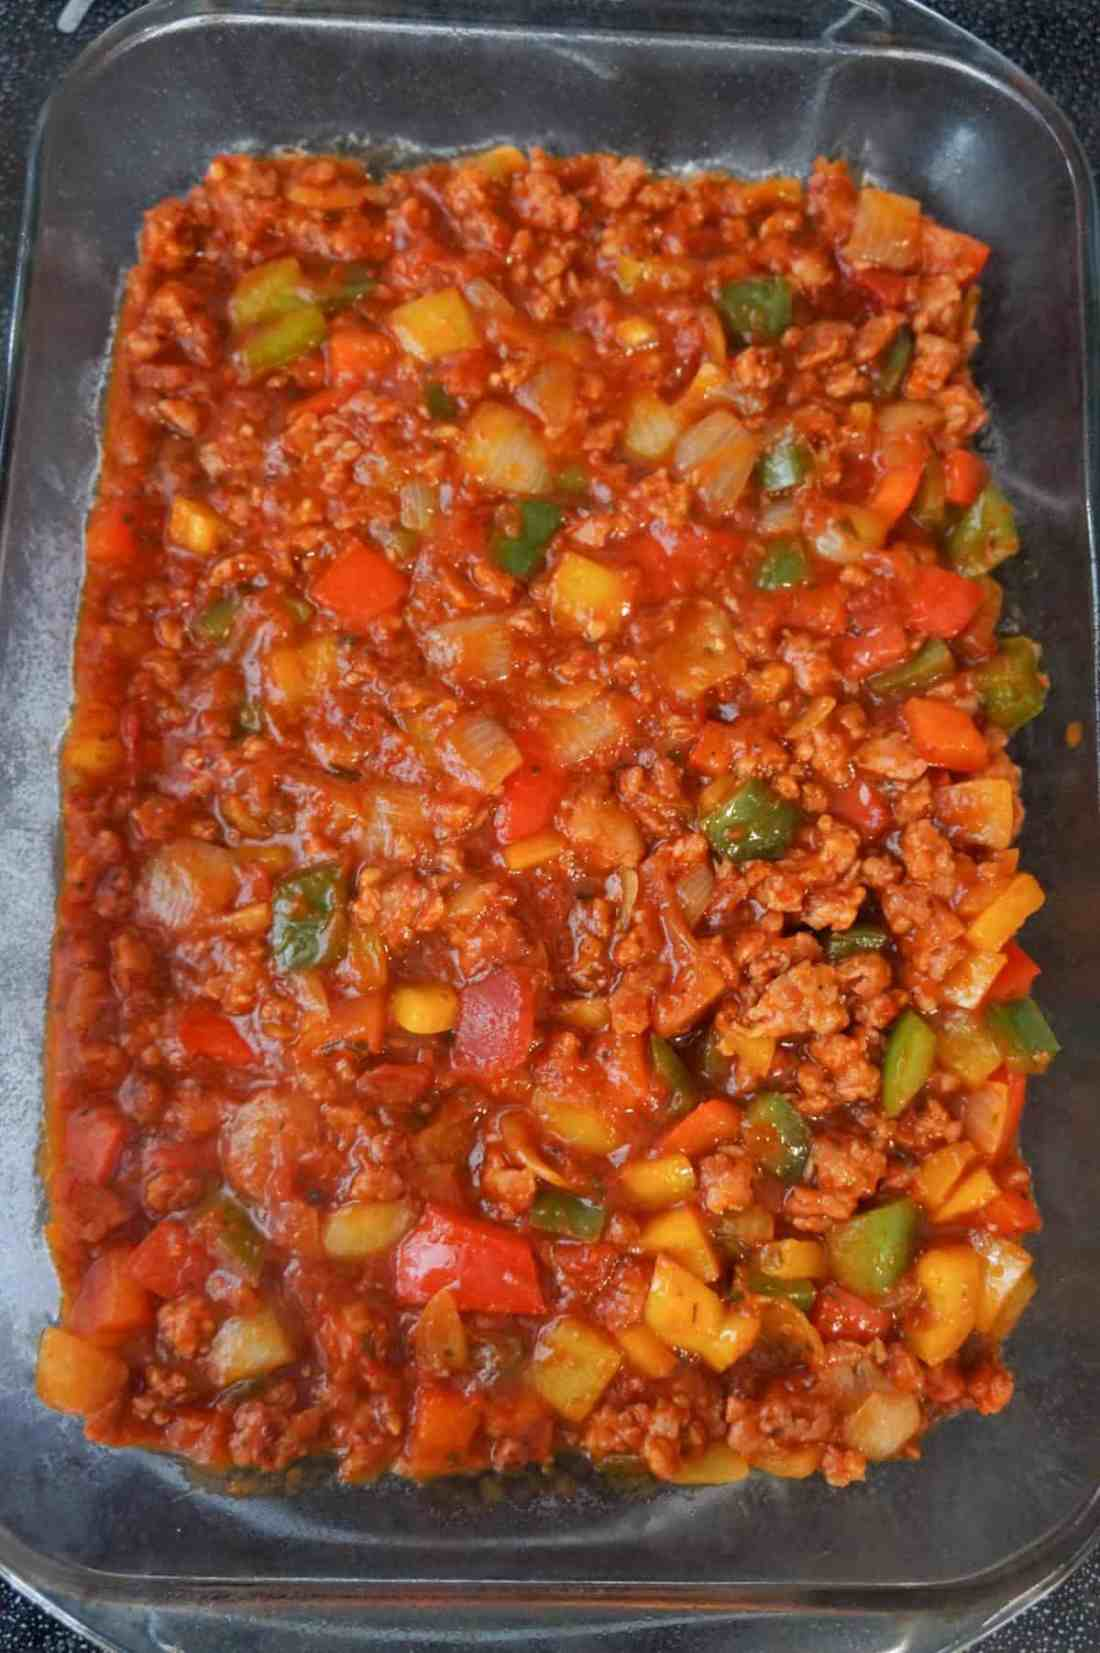 sausage and peppers mixture in a baking dish